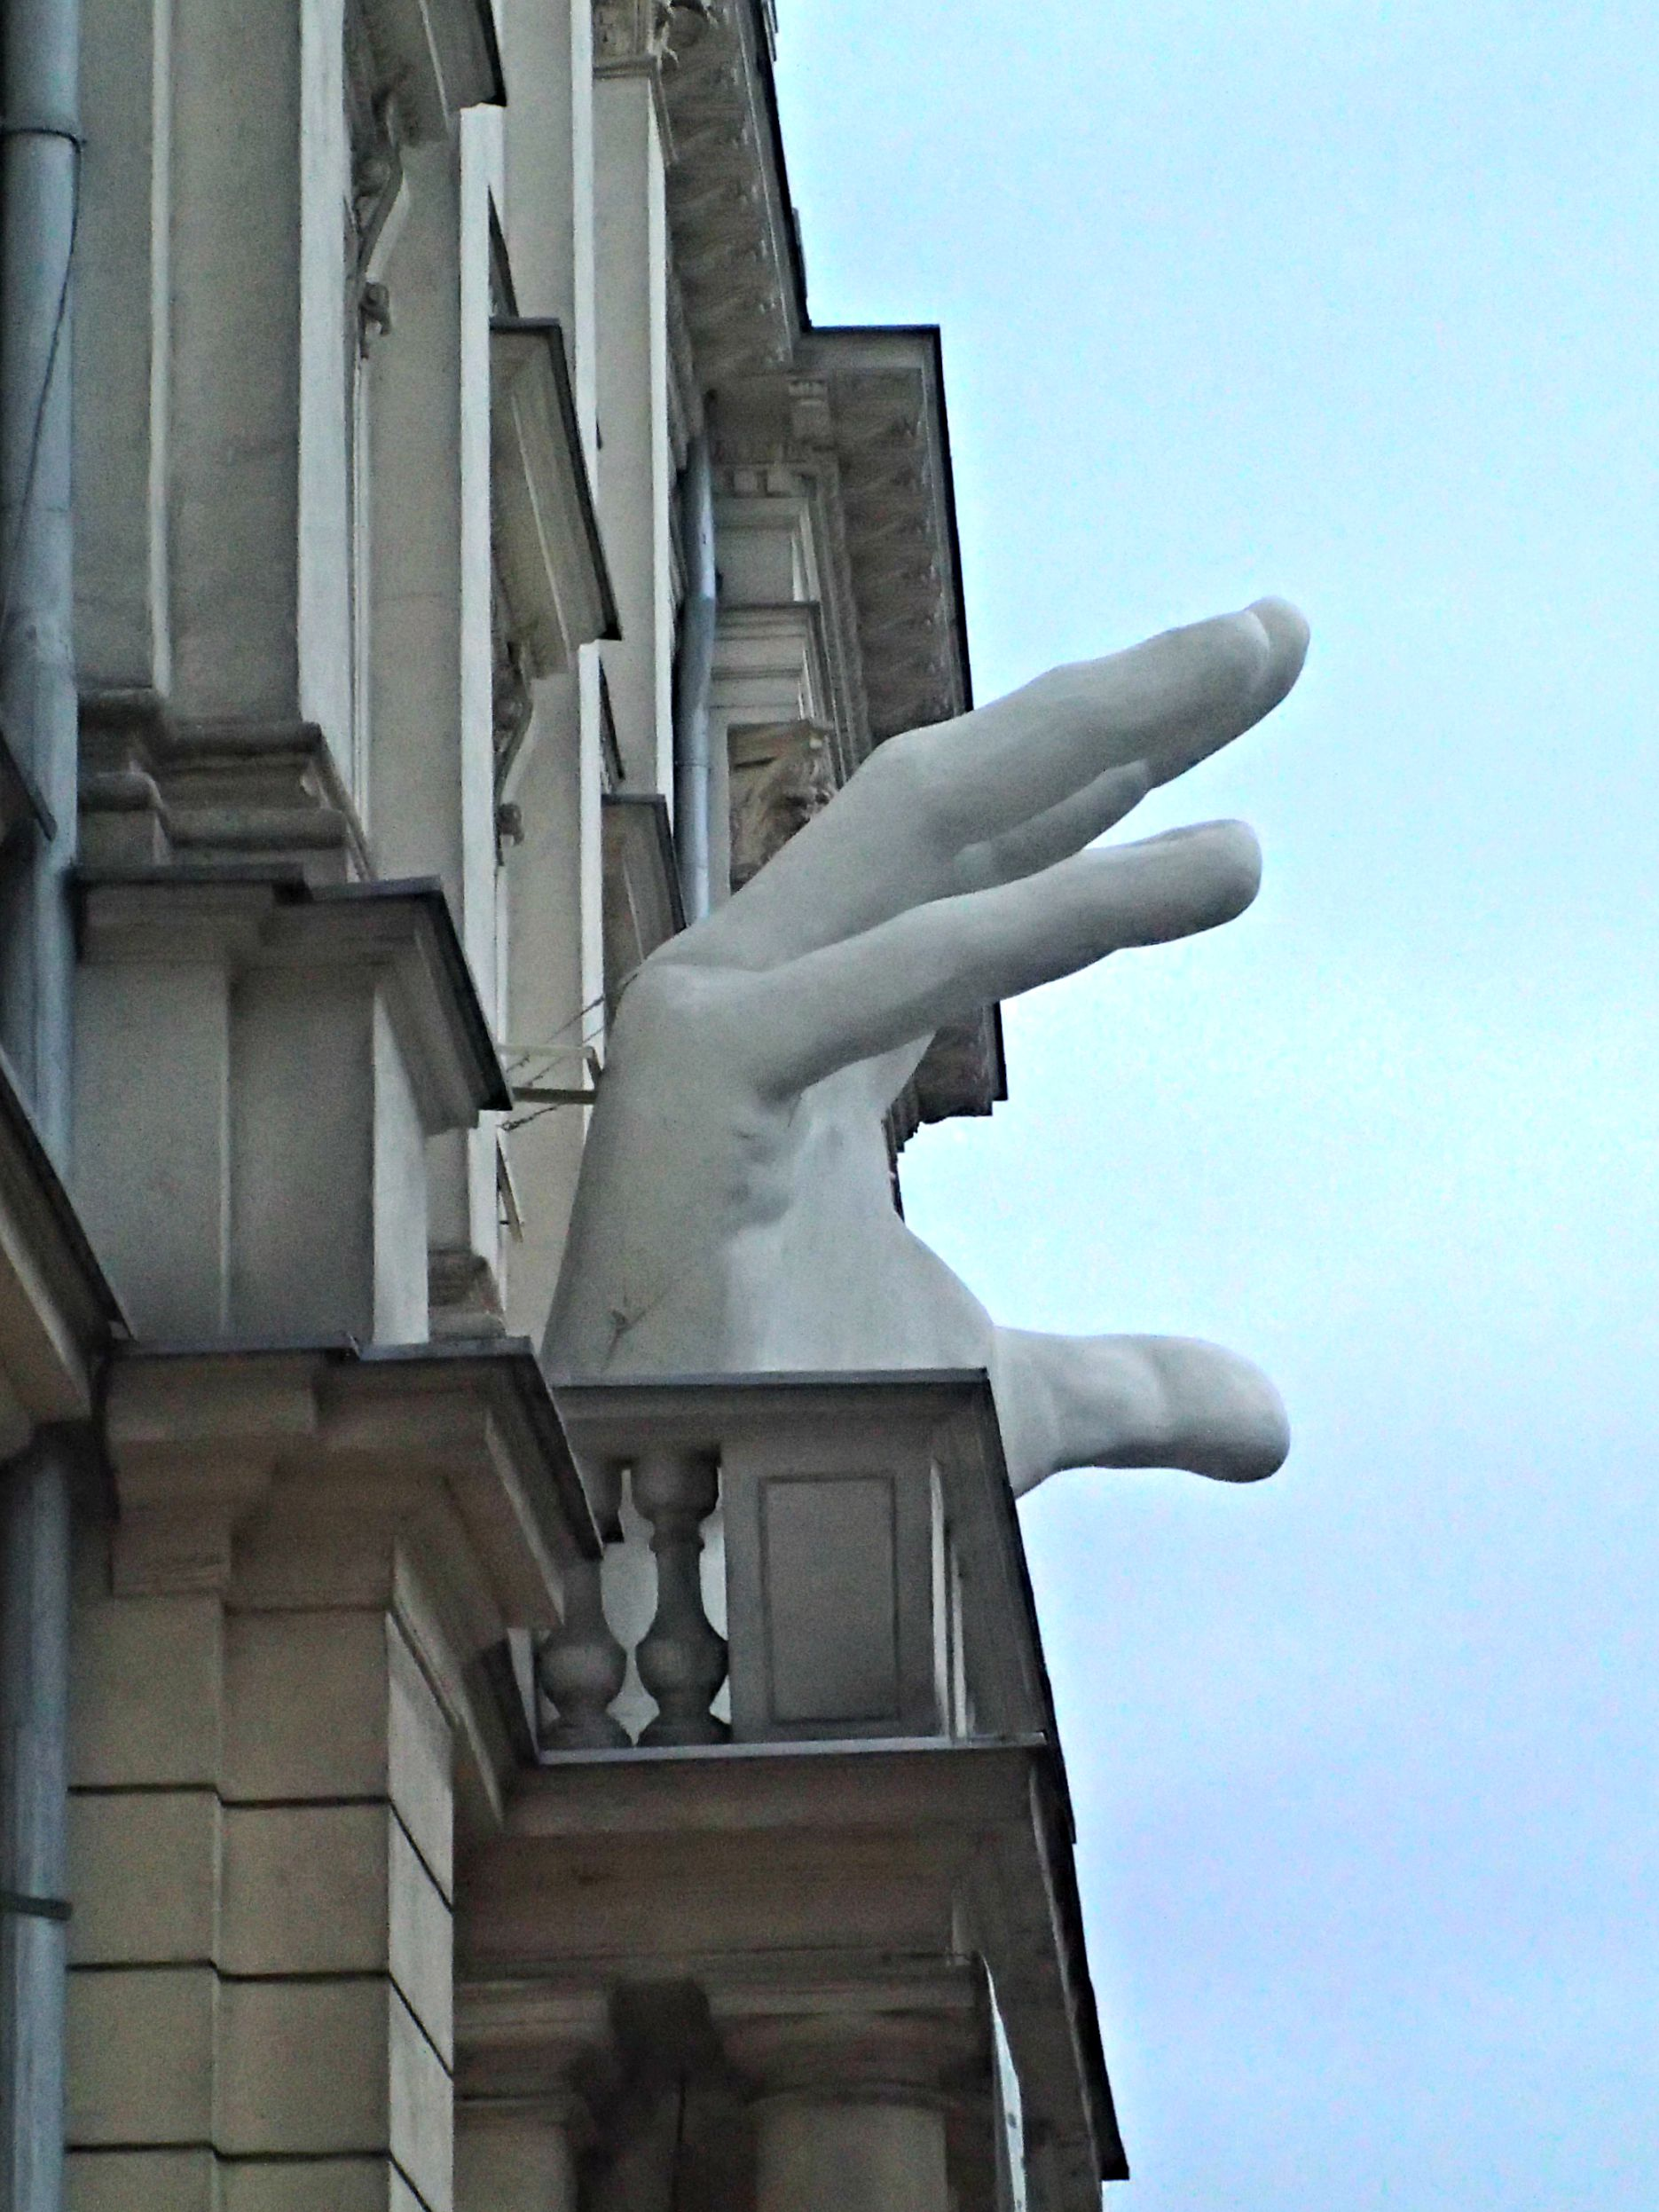 Giant mysterious hand on the balcony of the Collegium Nobilium  Founded in 1740, the Collegium Nobilium was originally an elite boarding school run by Piarist monks and one of the predecessors of Warsaw University. It was almost completely destroyed during the Warsaw Uprising. Rebuilt after the war, it is now a theater.